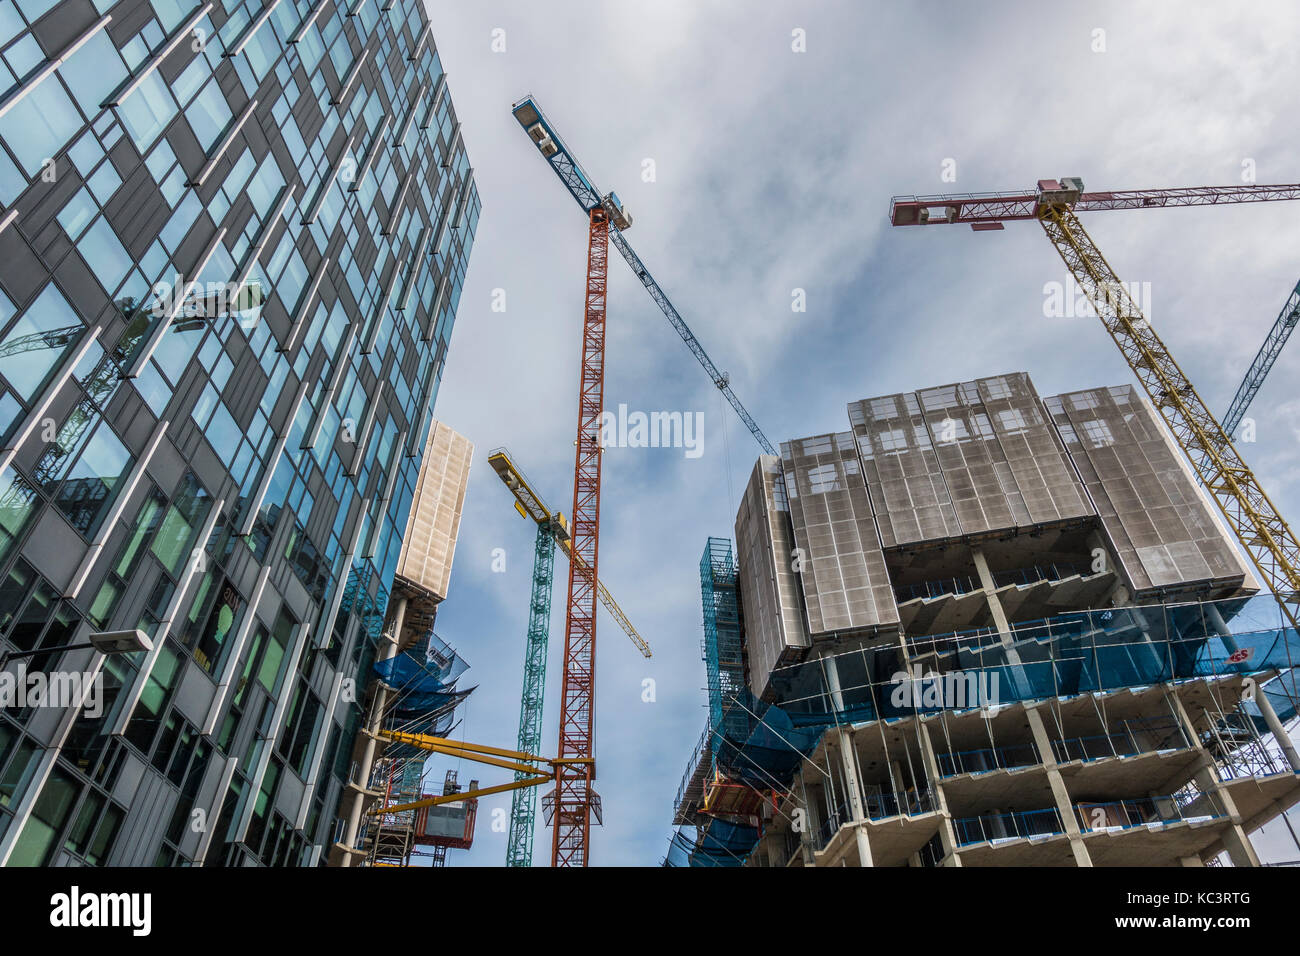 Skyward view of construction at Greenwich Peninsular in East London, with new build apartment blocks and cranes. - Stock Image